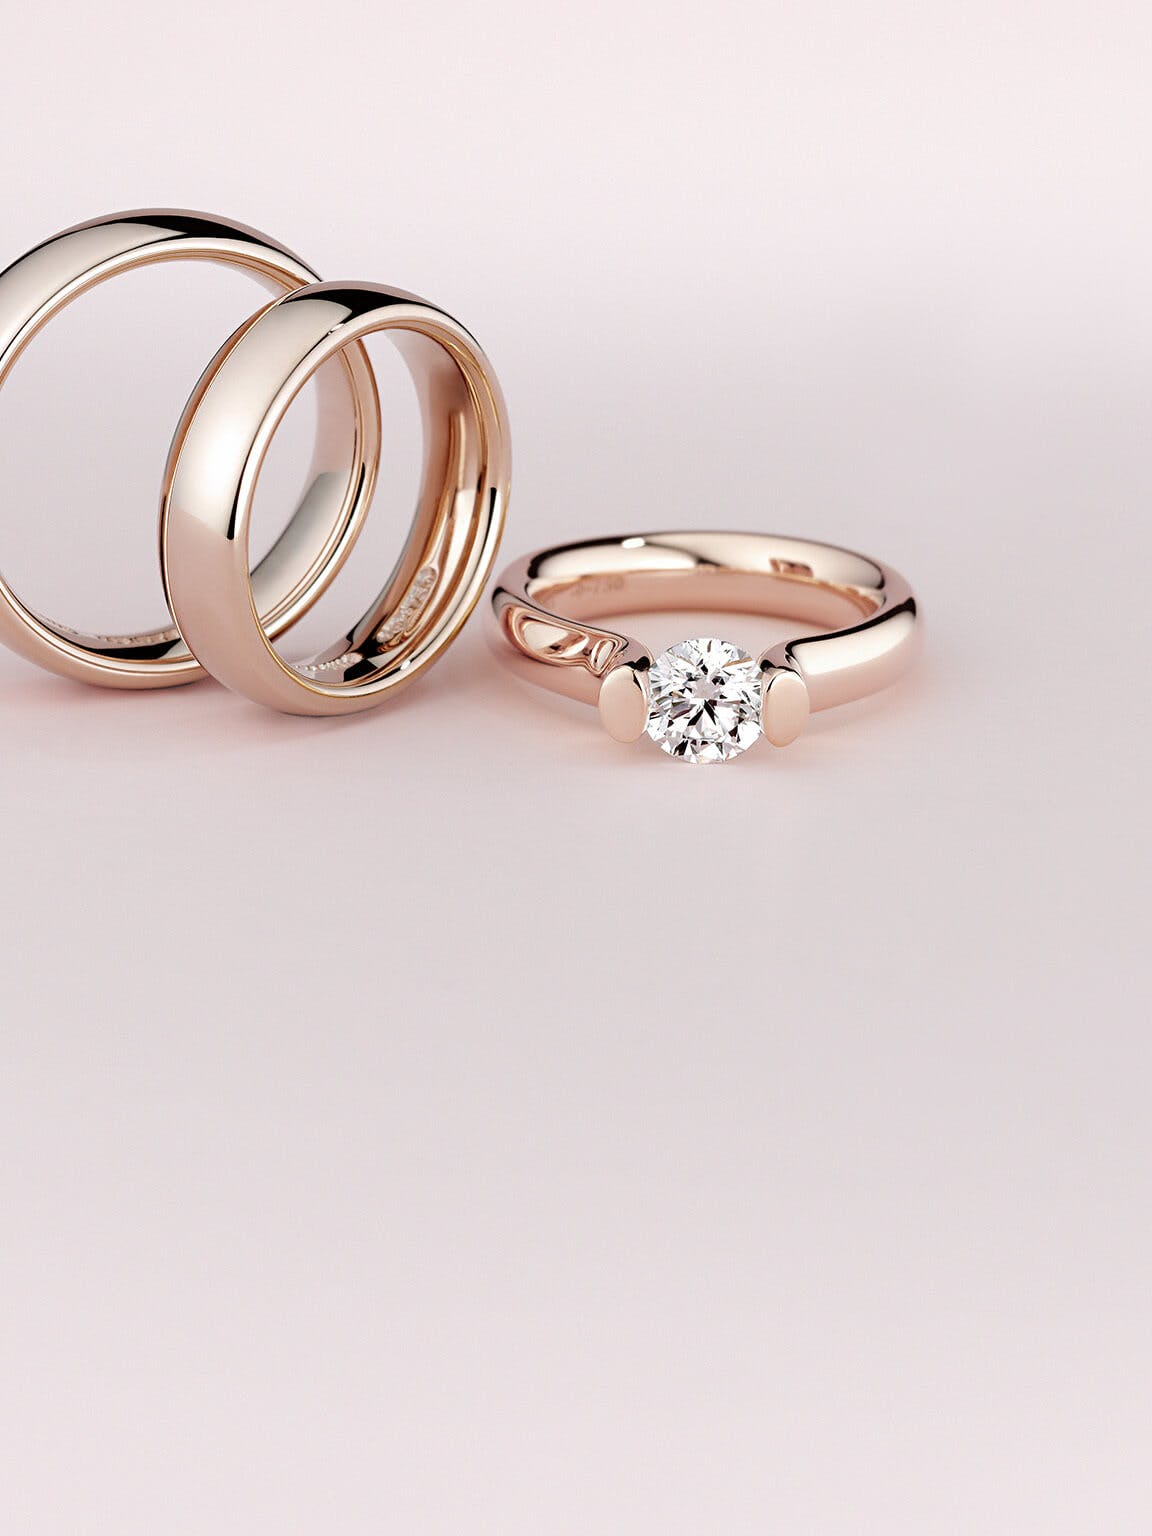 Niessing Wedding Rings Engagement Rings Tension Rings